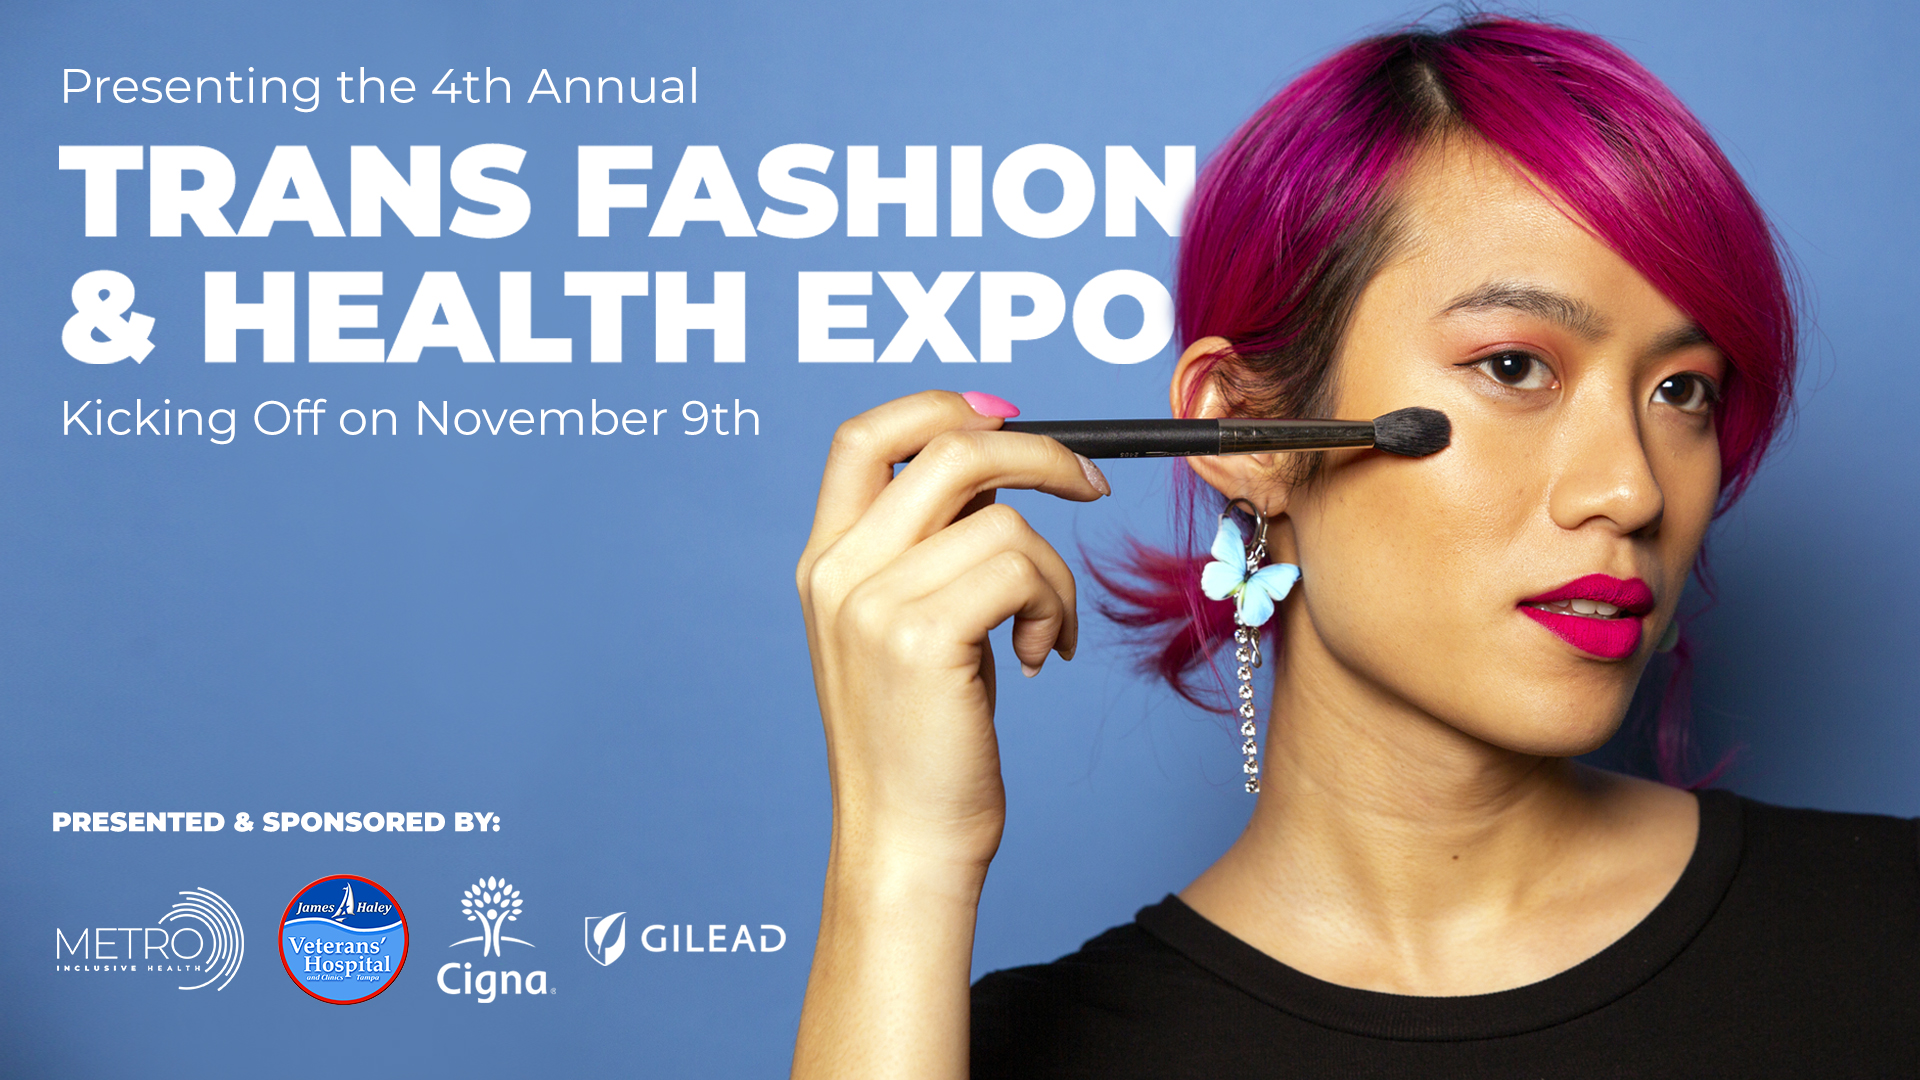 Trans Fashion & Health Expo - Presented by METRO